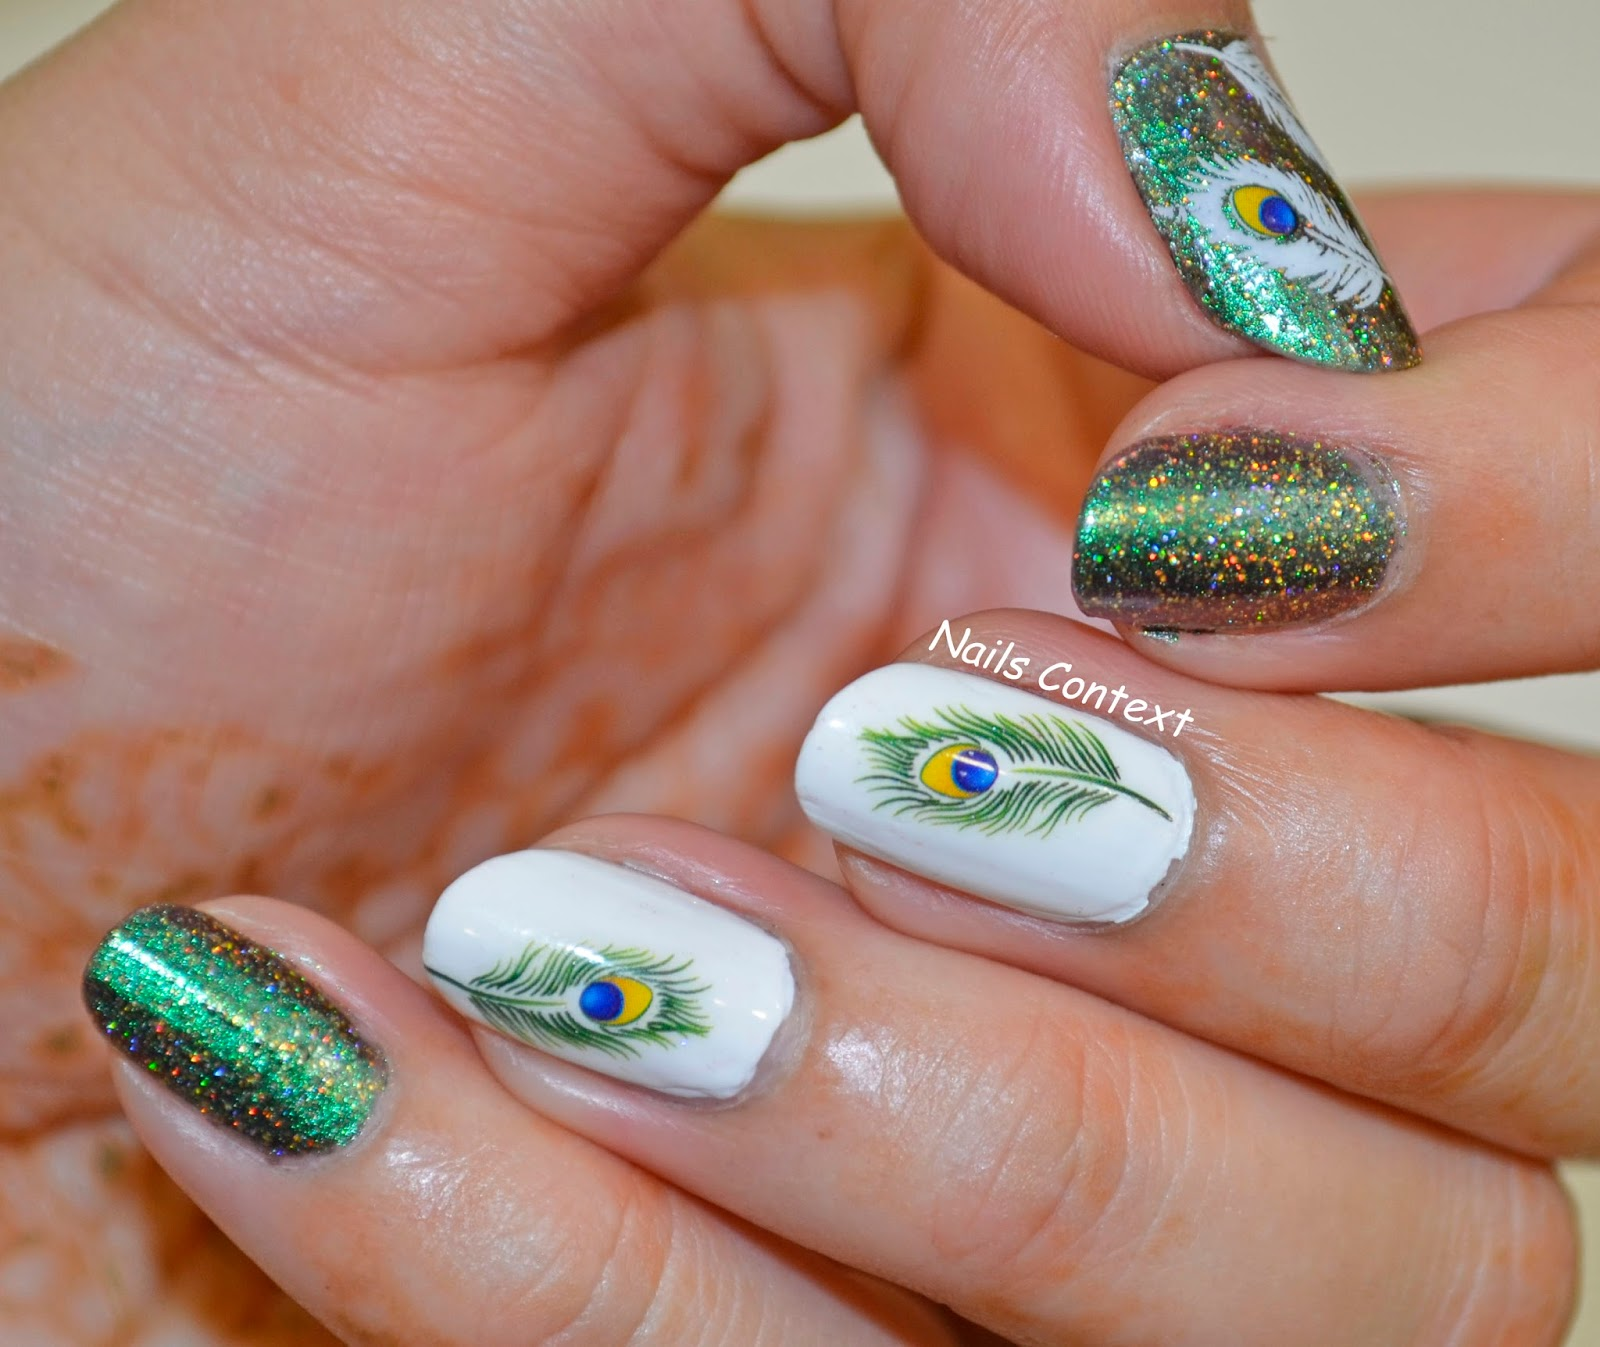 Nails Context: Peacock Feathers